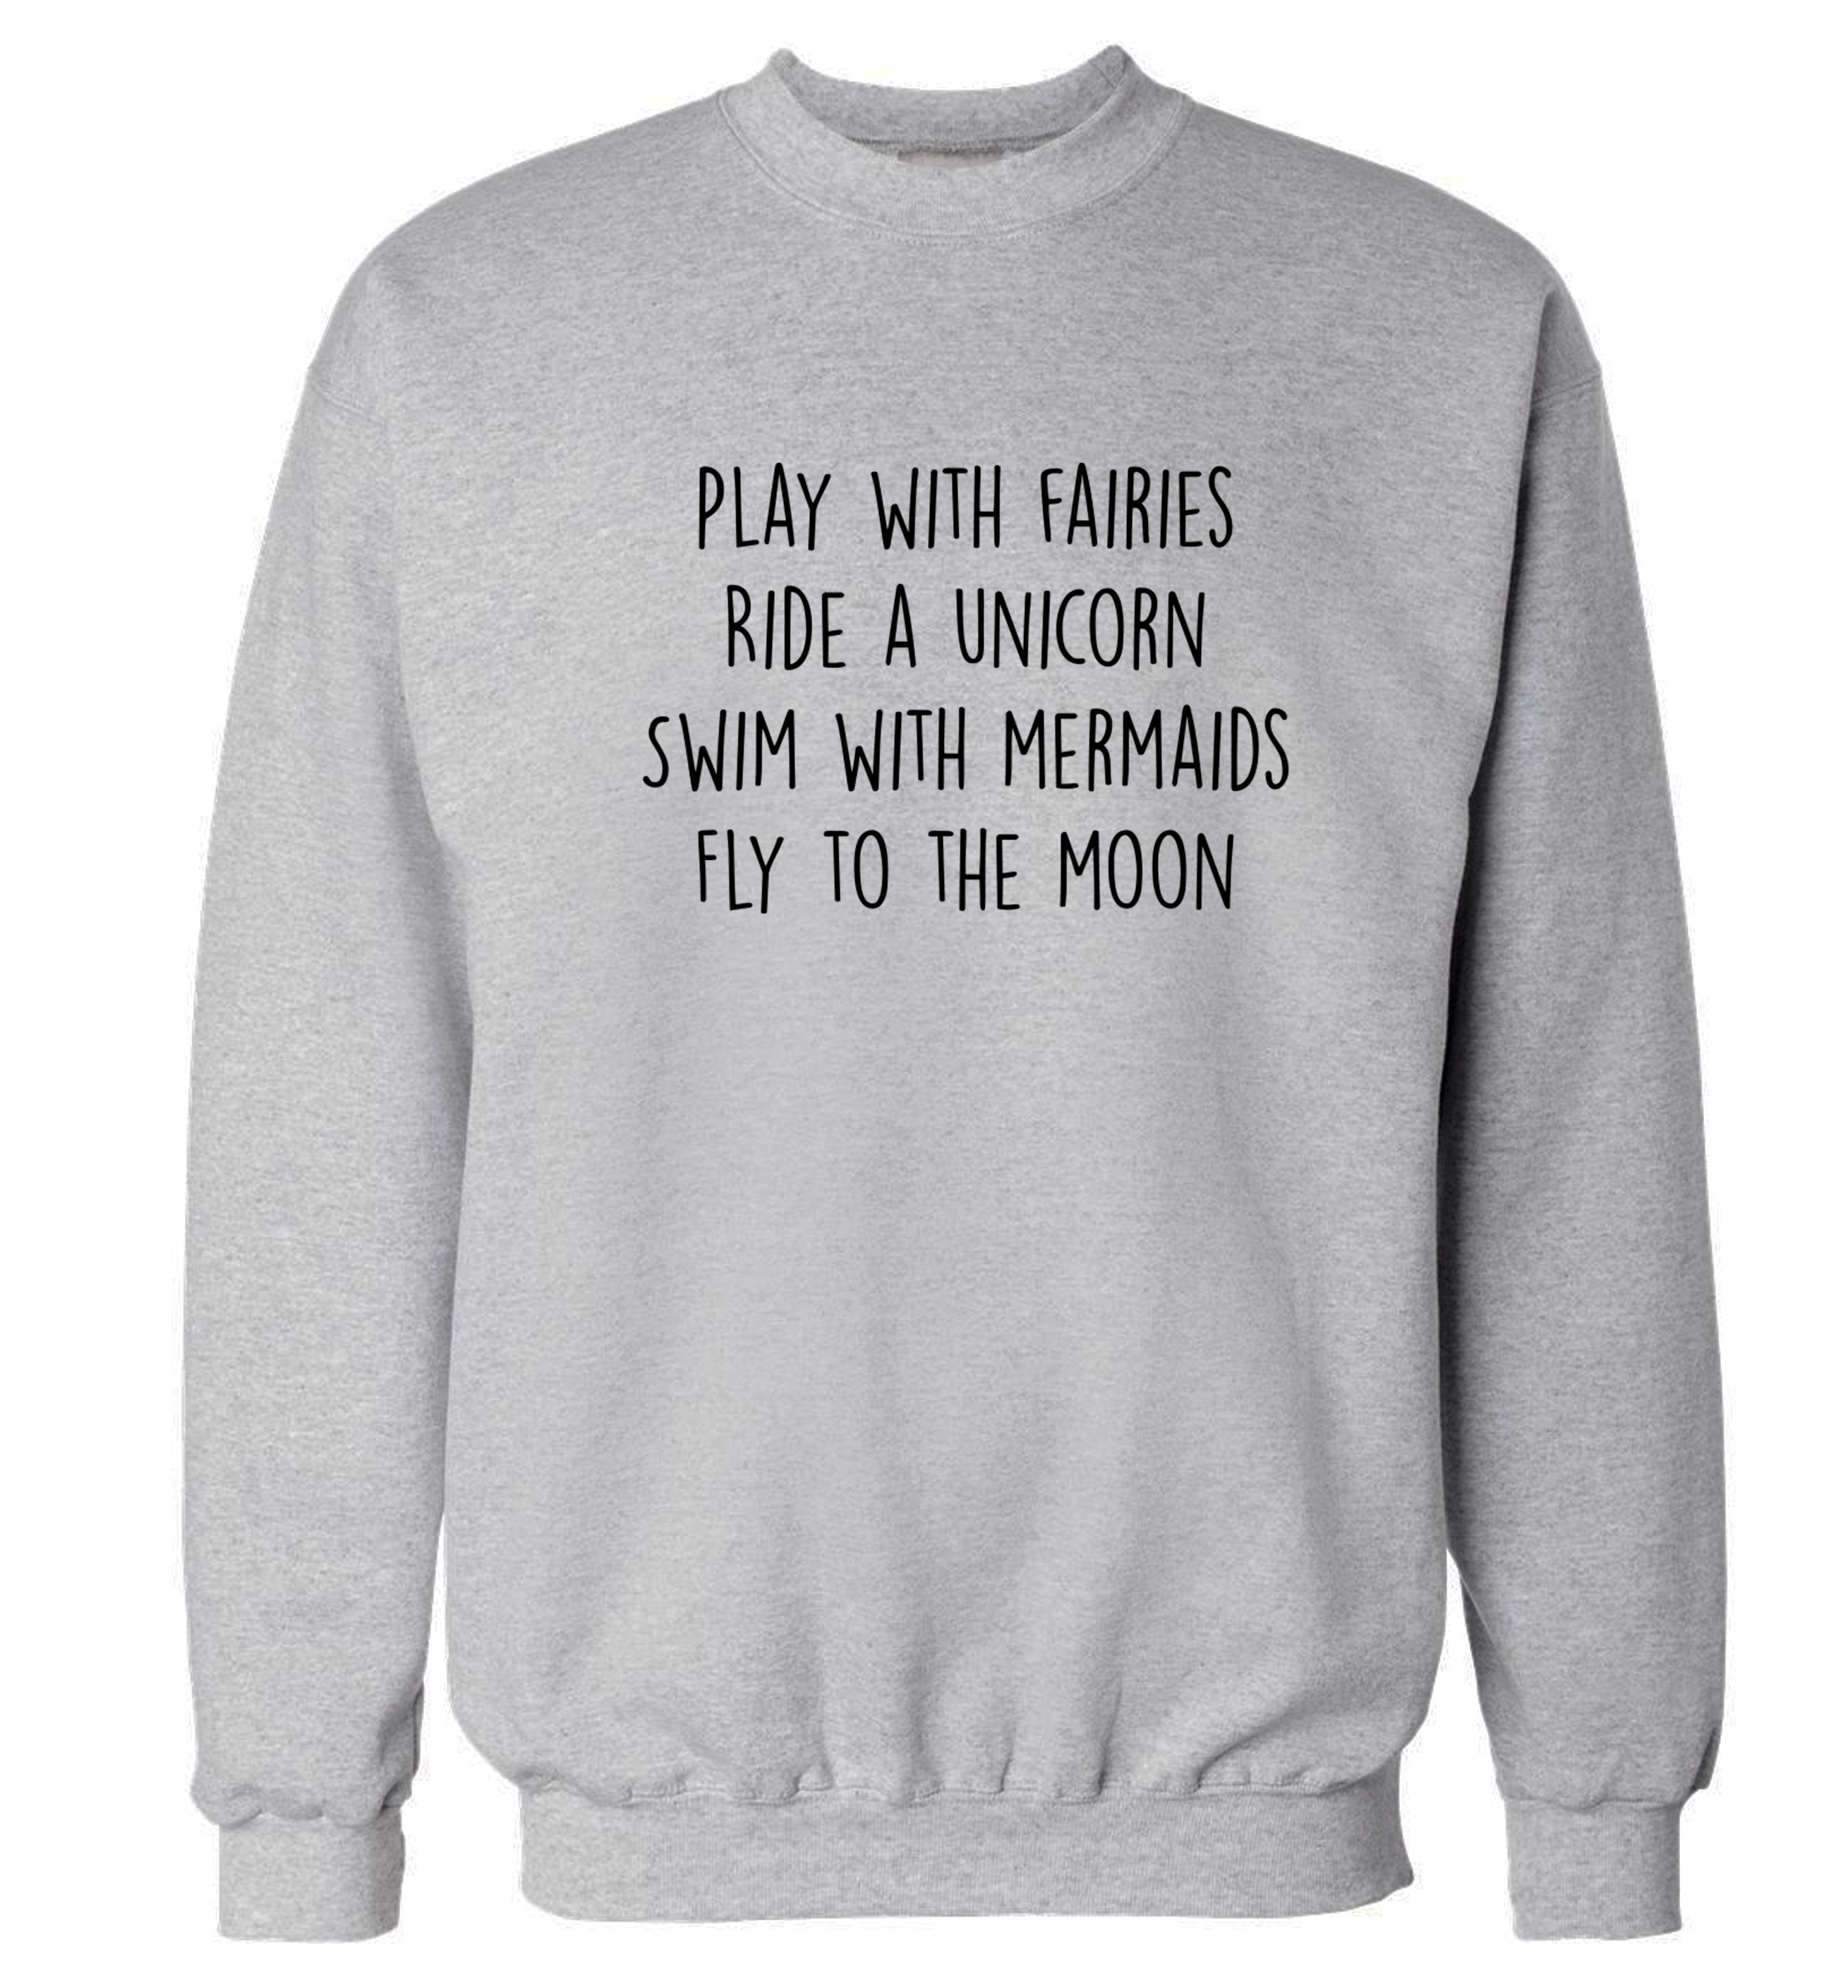 Customer Favorite Play With Fairies Ride A Unicorn Swim Mermaids Fly To The Moon Jumper Sweatshirt Fantasy Tumblr Instagram Hipster Pullover Xs 3xl 105 Accuweather Shop